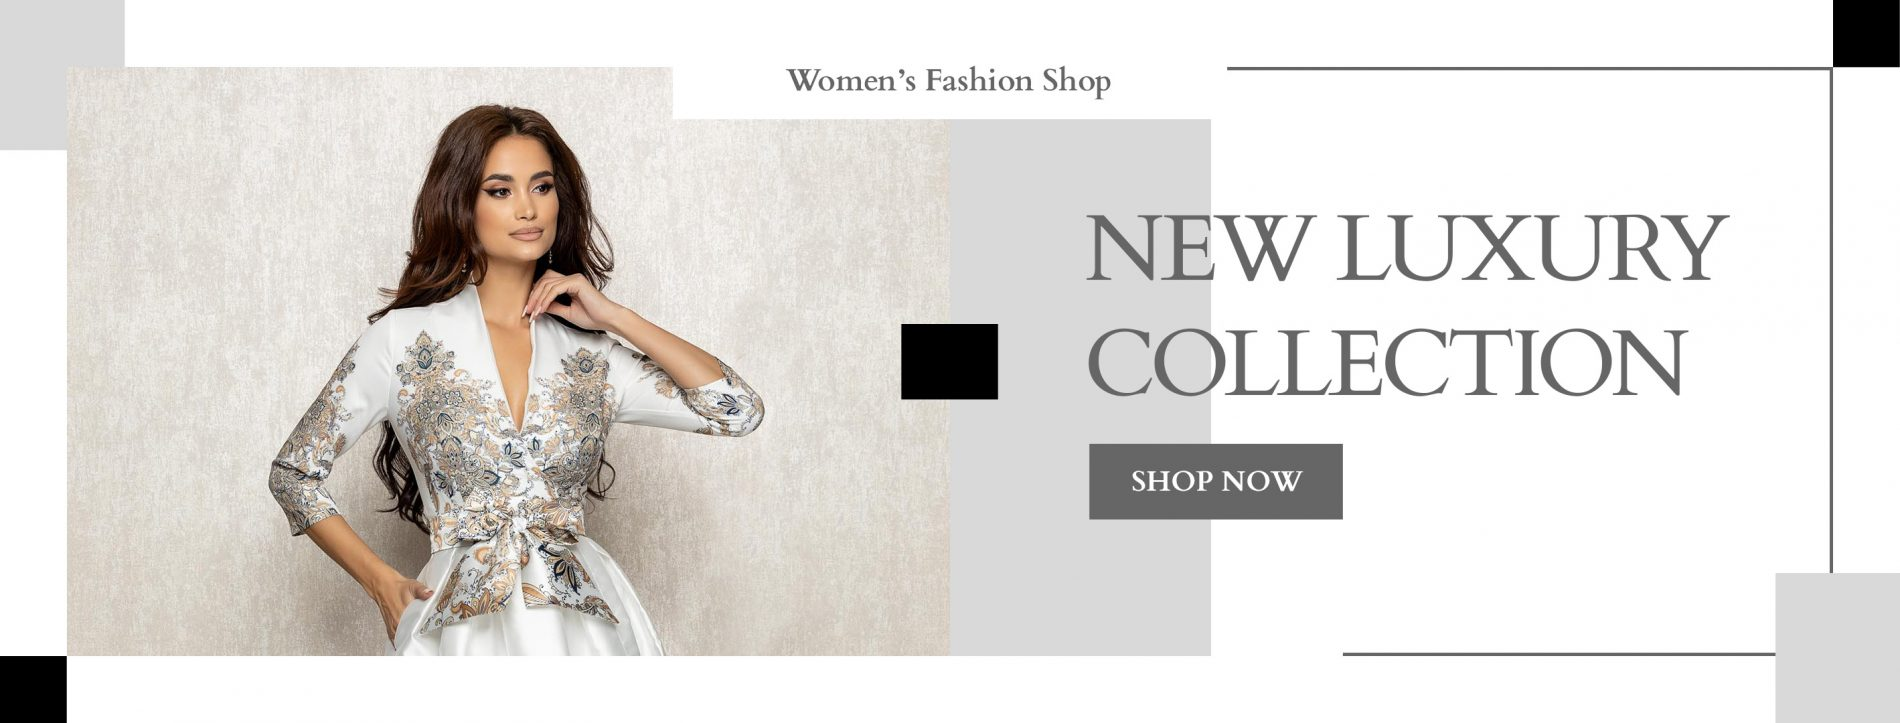 NEW LUXURY COLLECTION